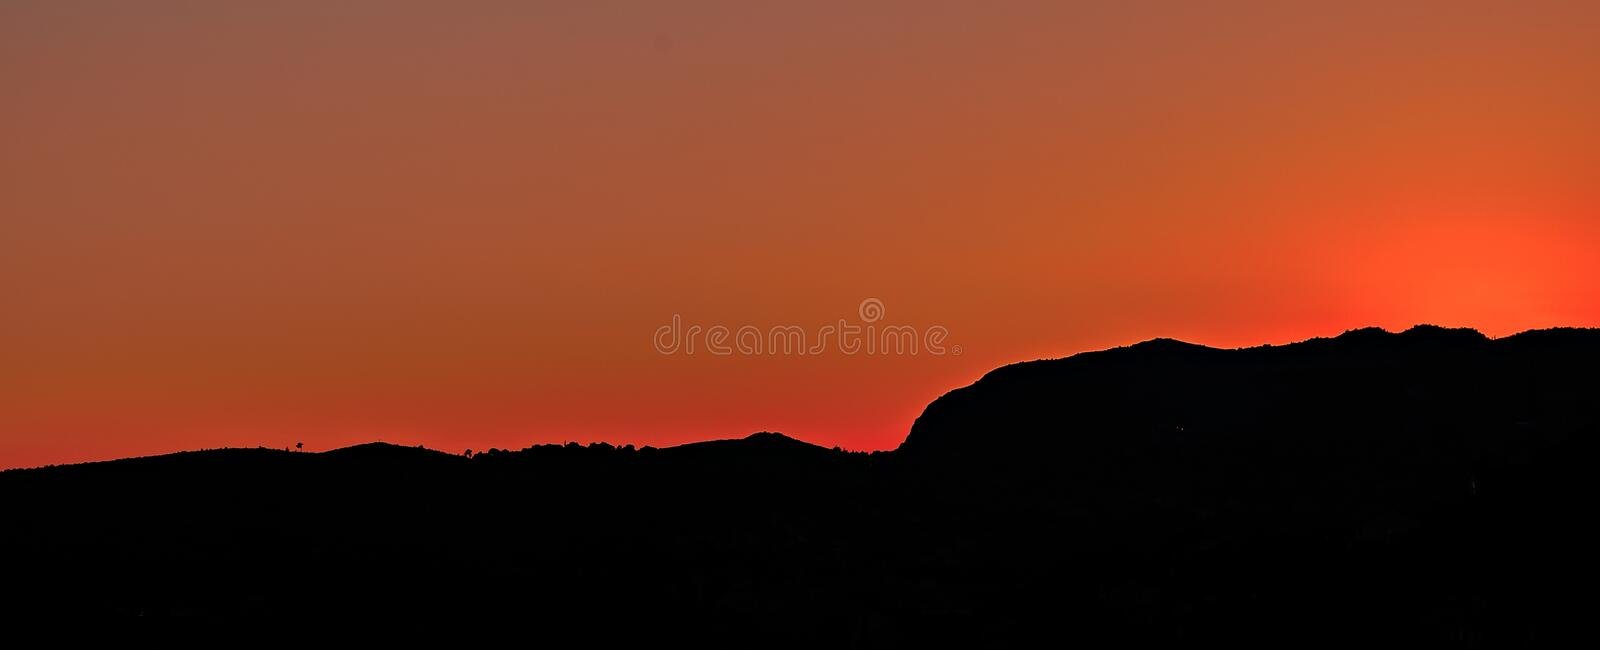 Black Mountain Under Brown Sky During Sunset Free Public Domain Cc0 Image